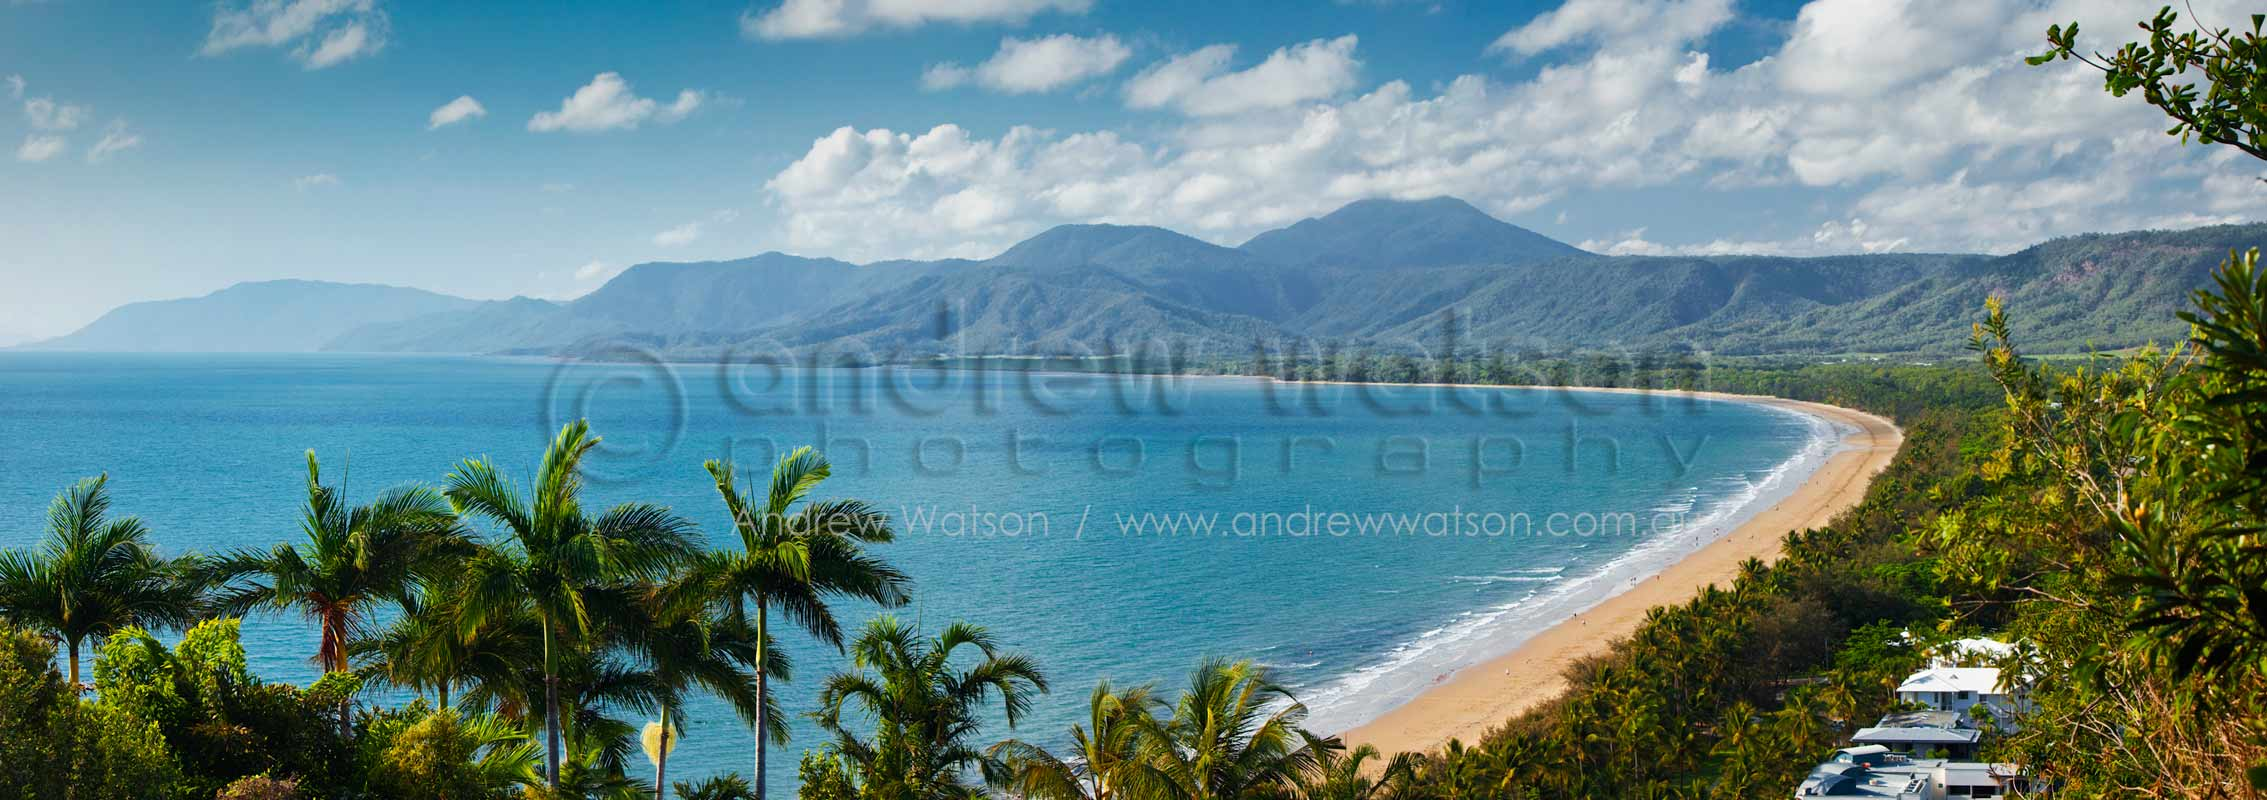 View of Four Mile Beach from Flagstaff HillPort Douglas, North QueenslandImage available for licensing or as a fine-art print... please enquire